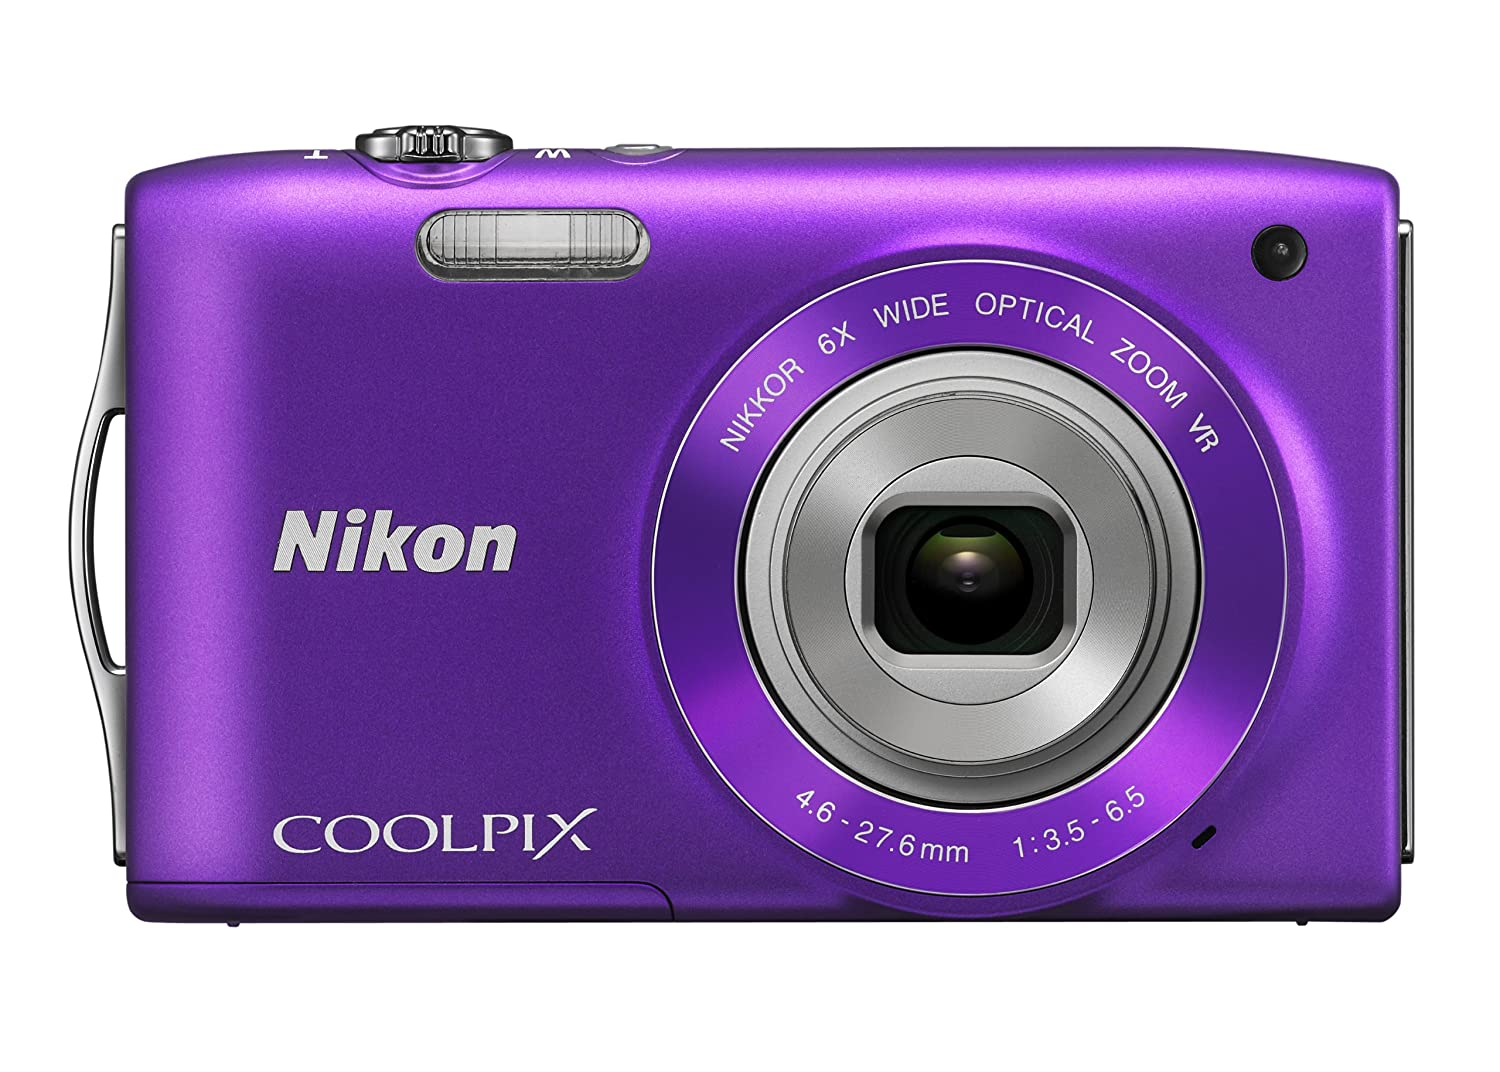 Amazon.com : Nikon COOLPIX S3300 16 MP Digital Camera with 6x Zoom NIKKOR  Glass Lens and 2.7-inch LCD (Purple) : Point And Shoot Digital Cameras :  Camera & ...